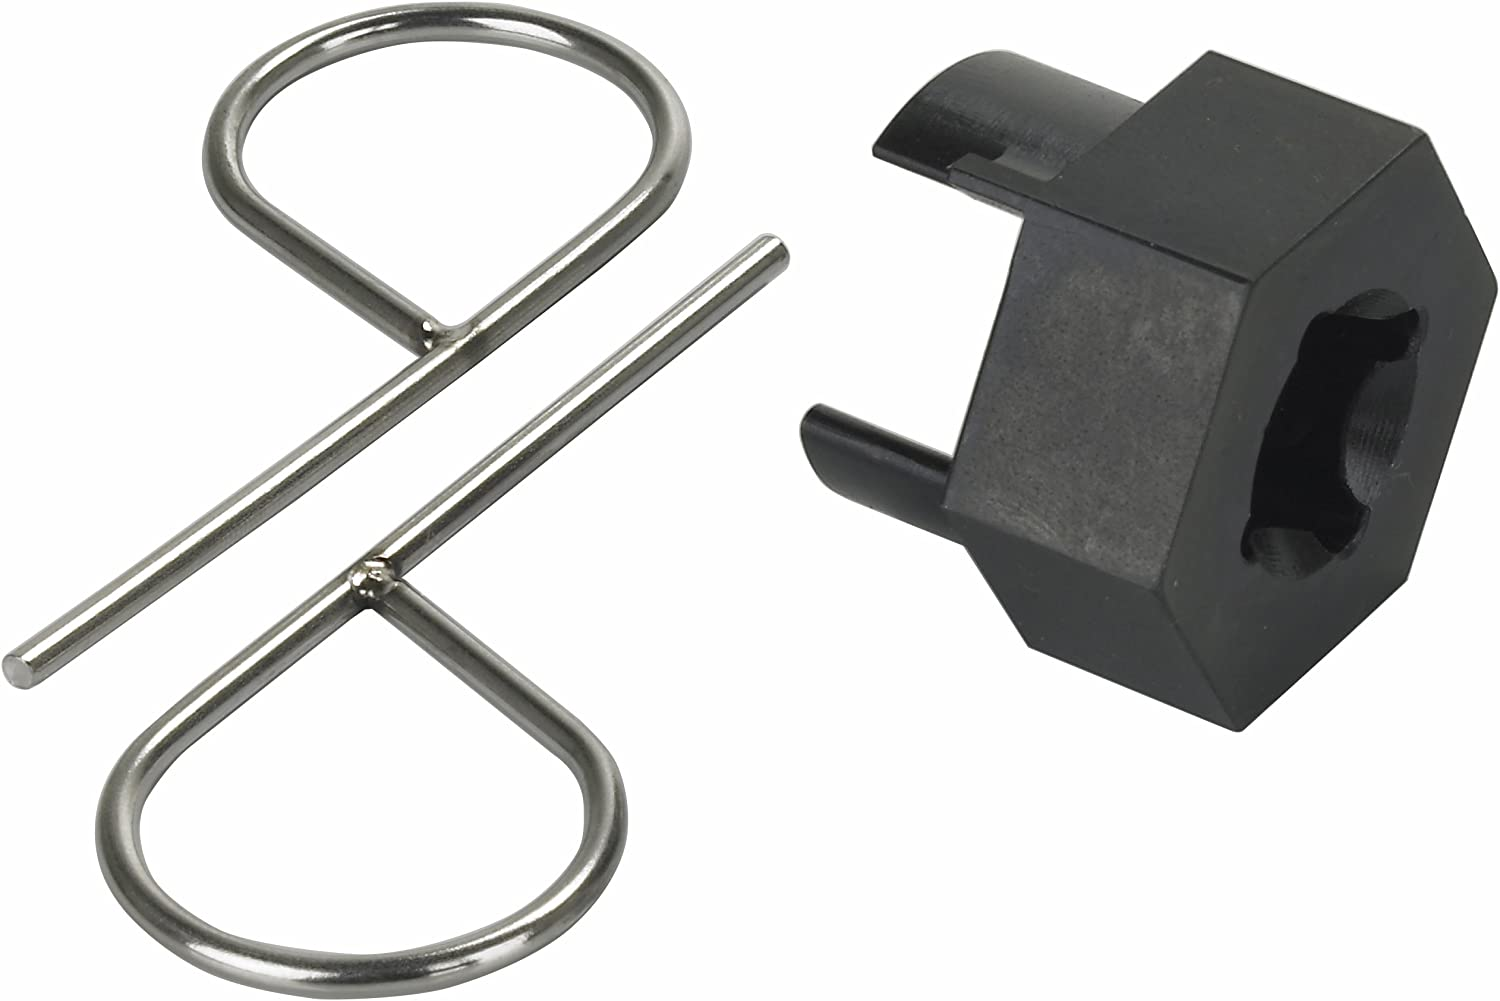 OTC 4849 Cam Chain Tensioner Unloader Tool for Harley-Davidson Twin Cam 88s